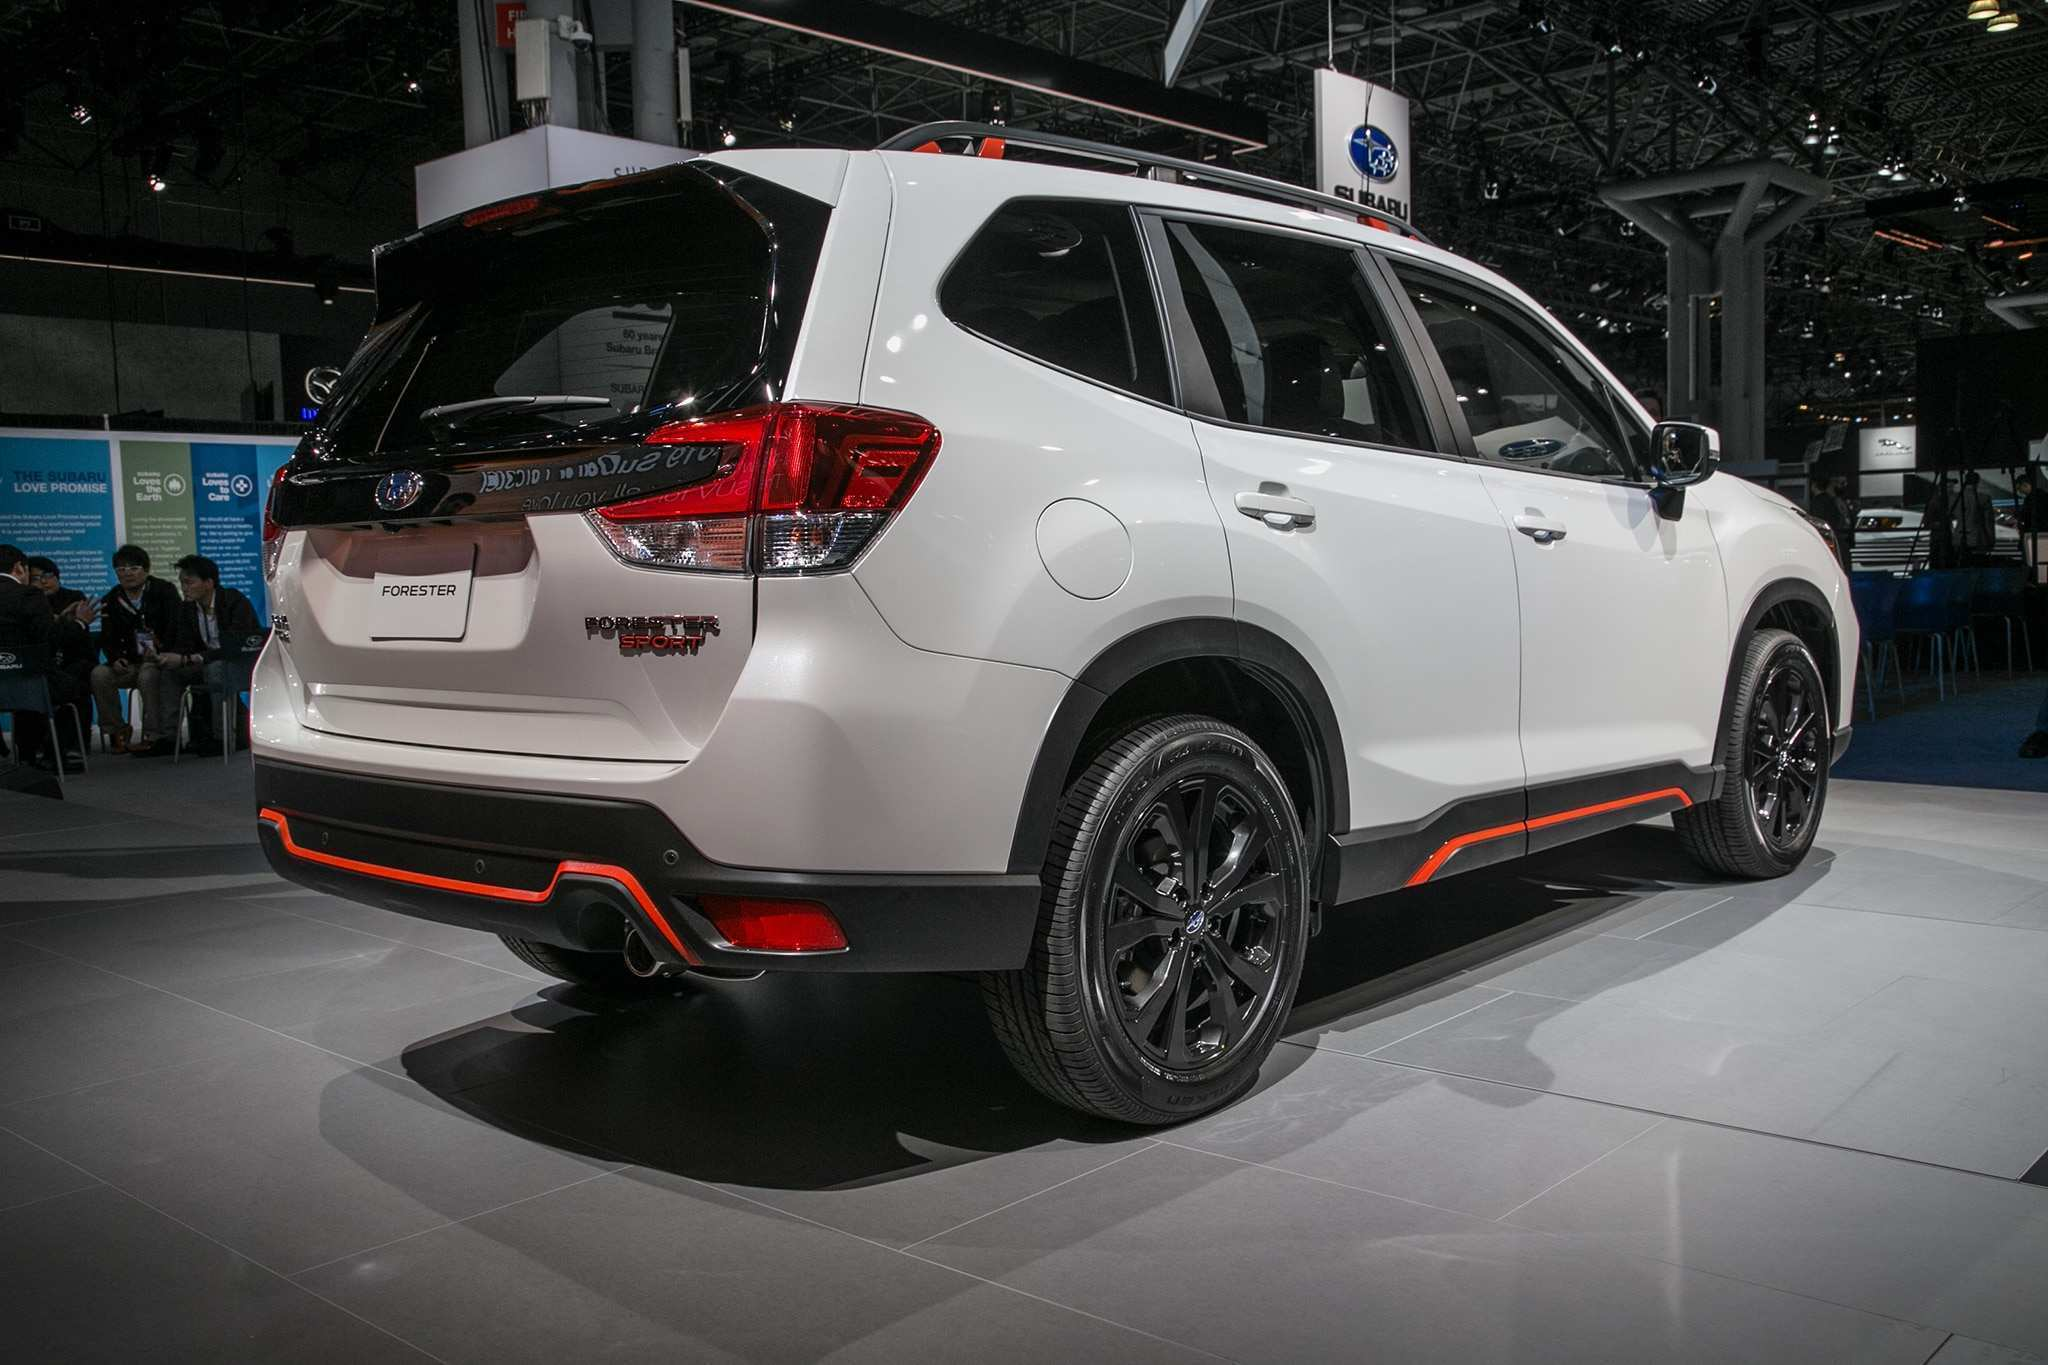 62 Best Review 2019 Subaru Vehicles Overview for 2019 Subaru Vehicles